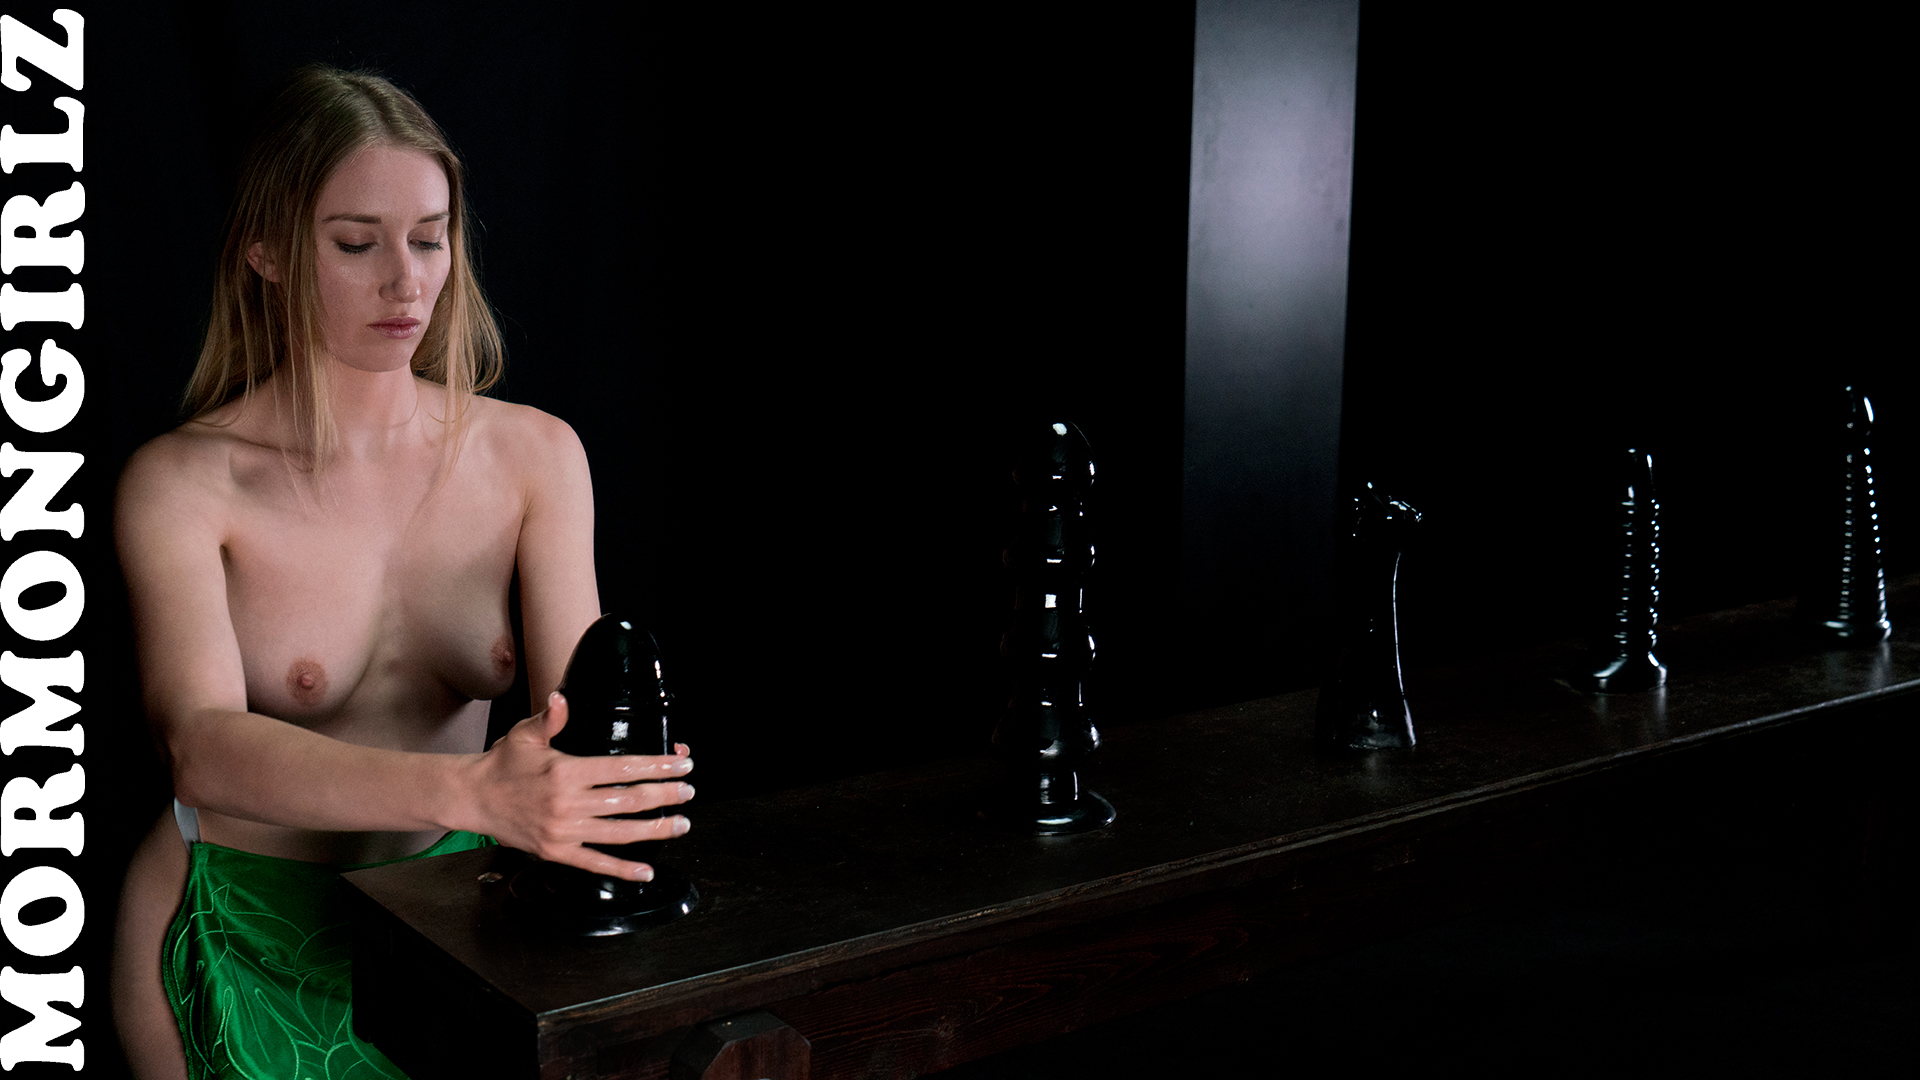 submissive Mormon Sister Jane experiencing a session with Father Joe #2